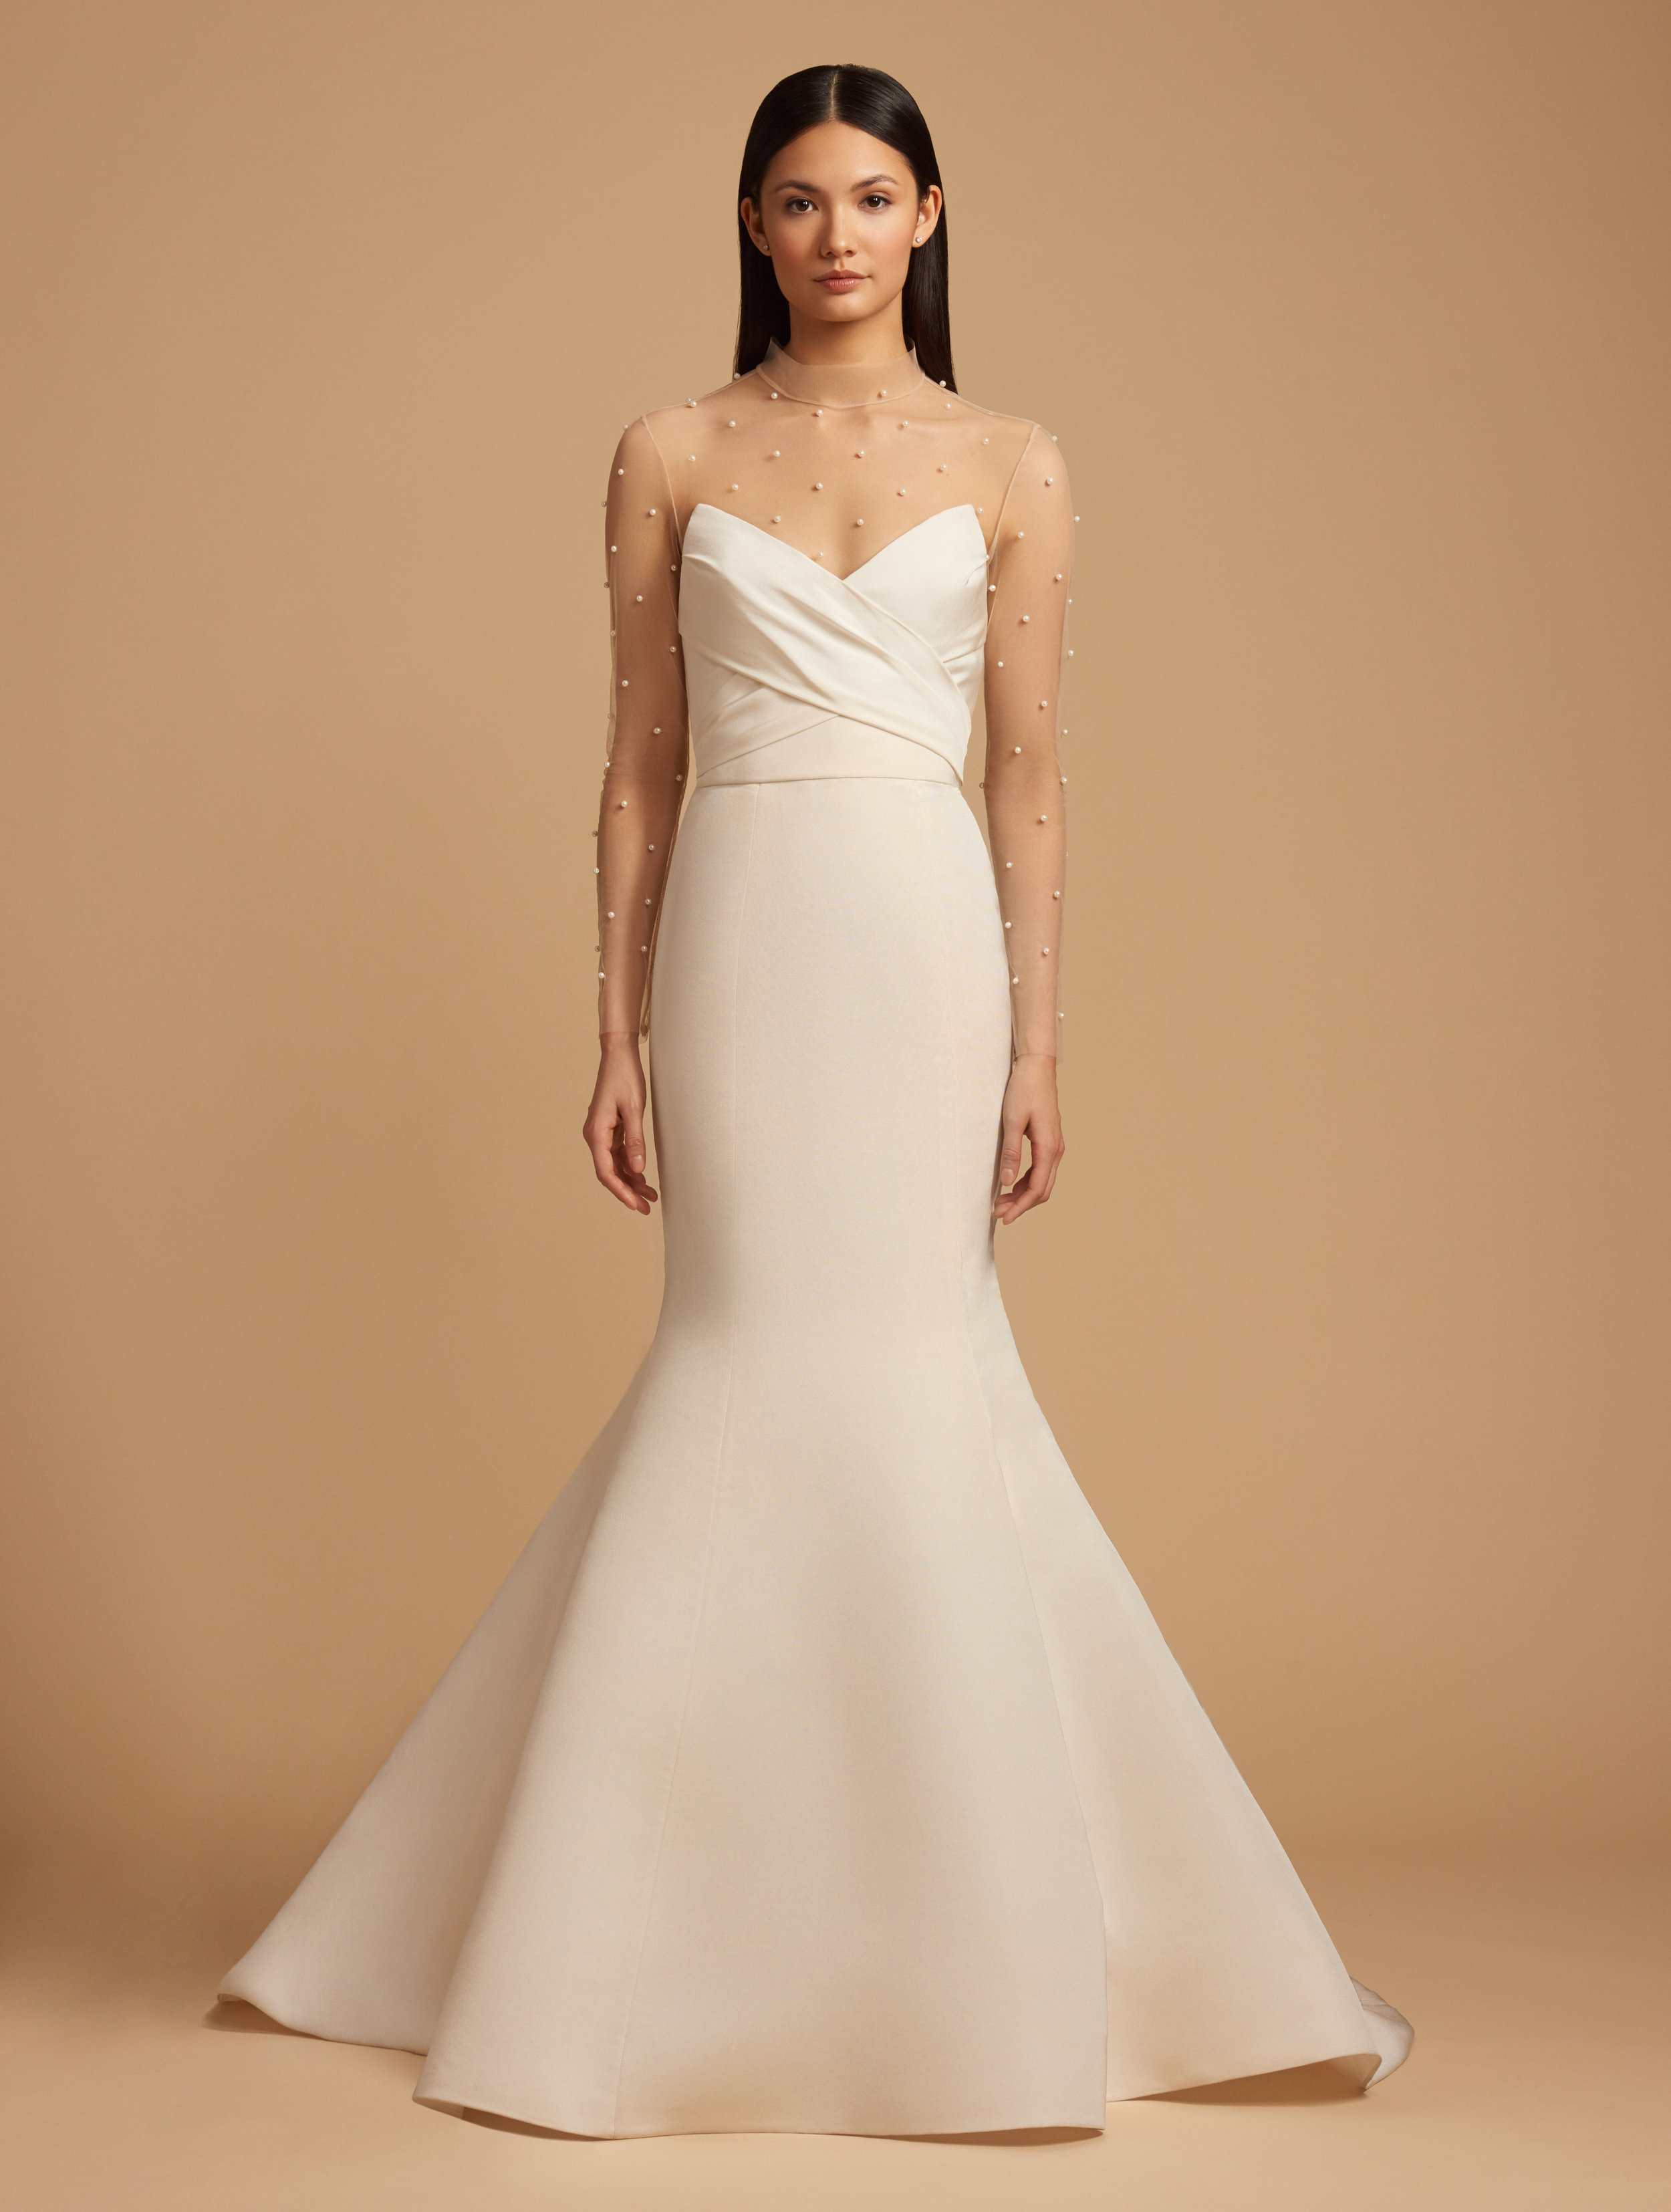 Allison Webb Meredith Wedding Dress with Illusion Sleeve Pearl Topper